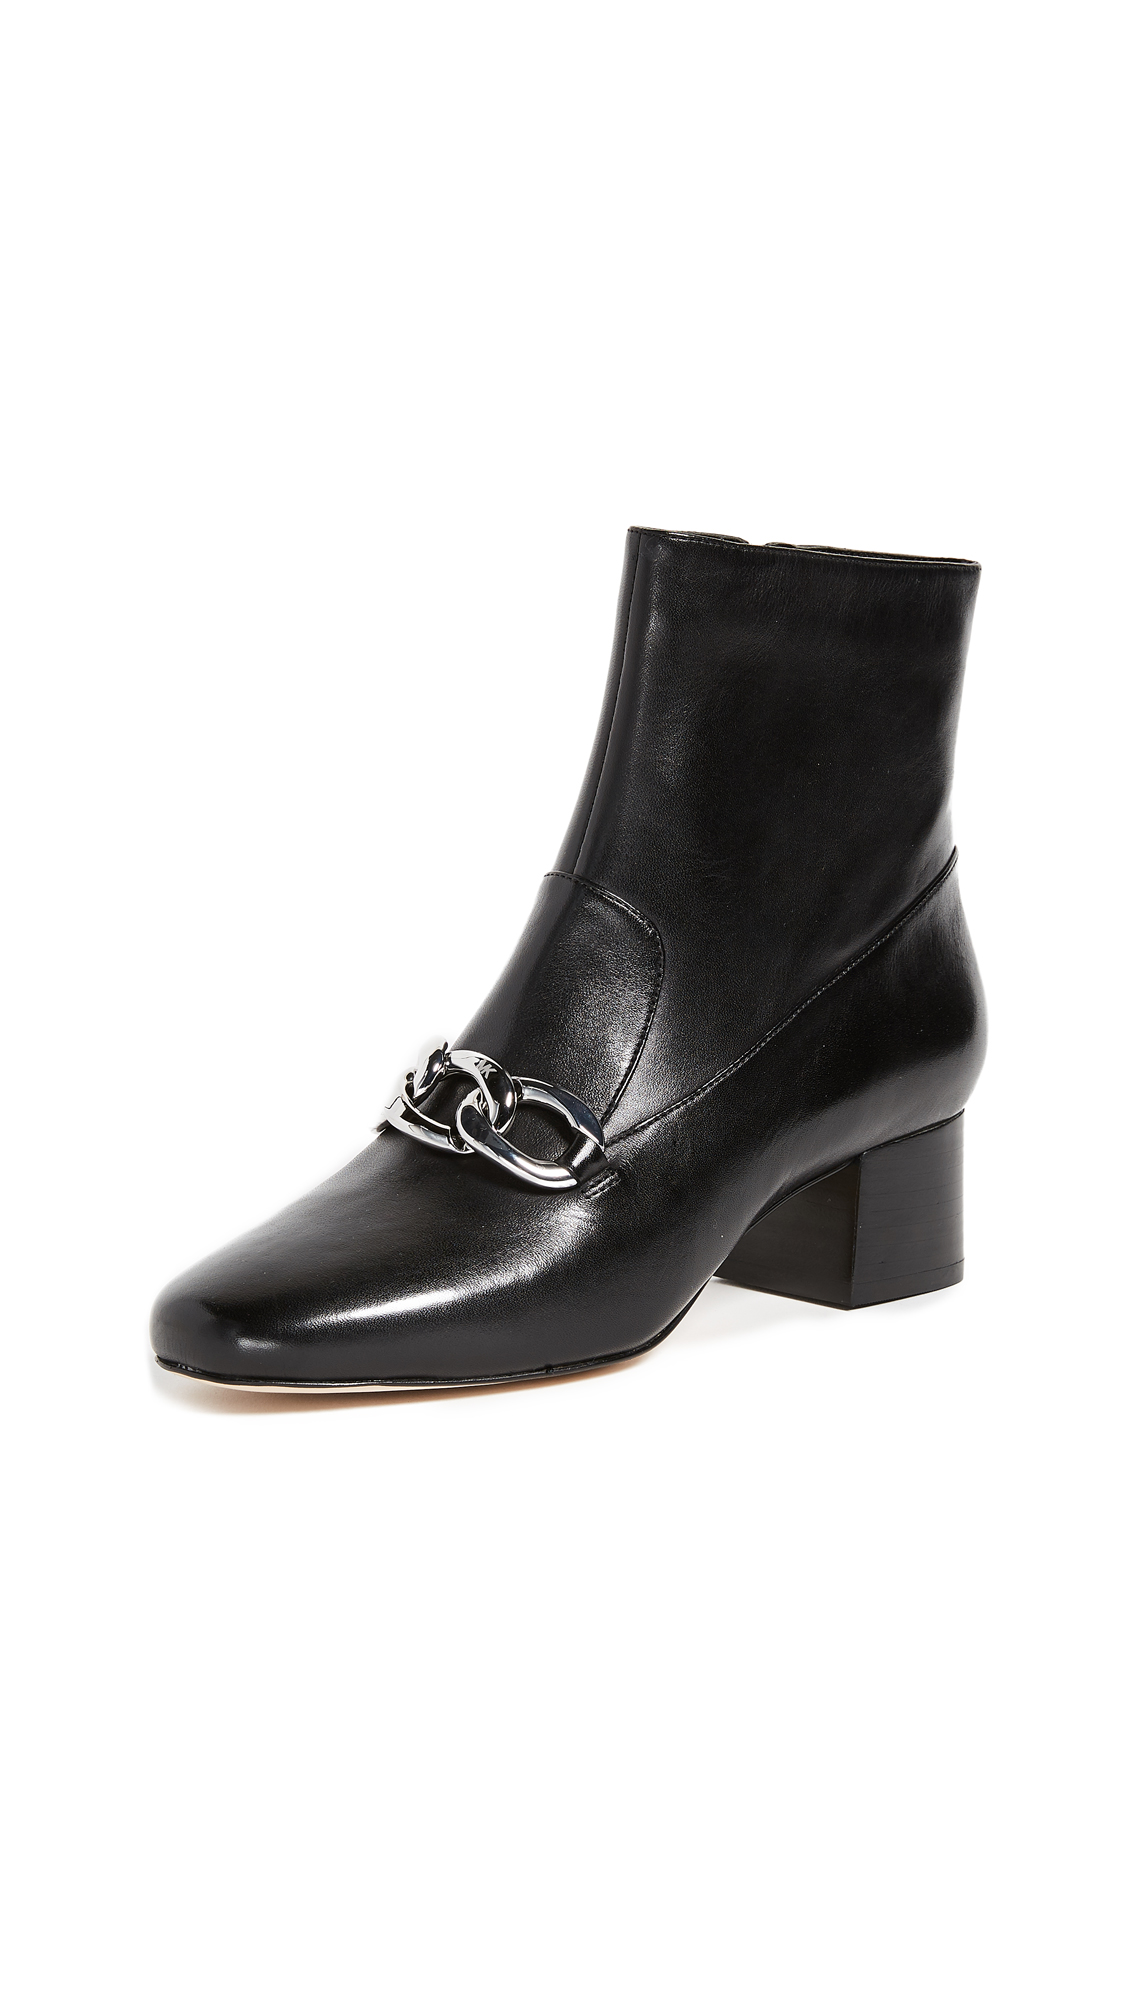 MICHAEL Michael Kors Vanessa Ankle Booties - Black